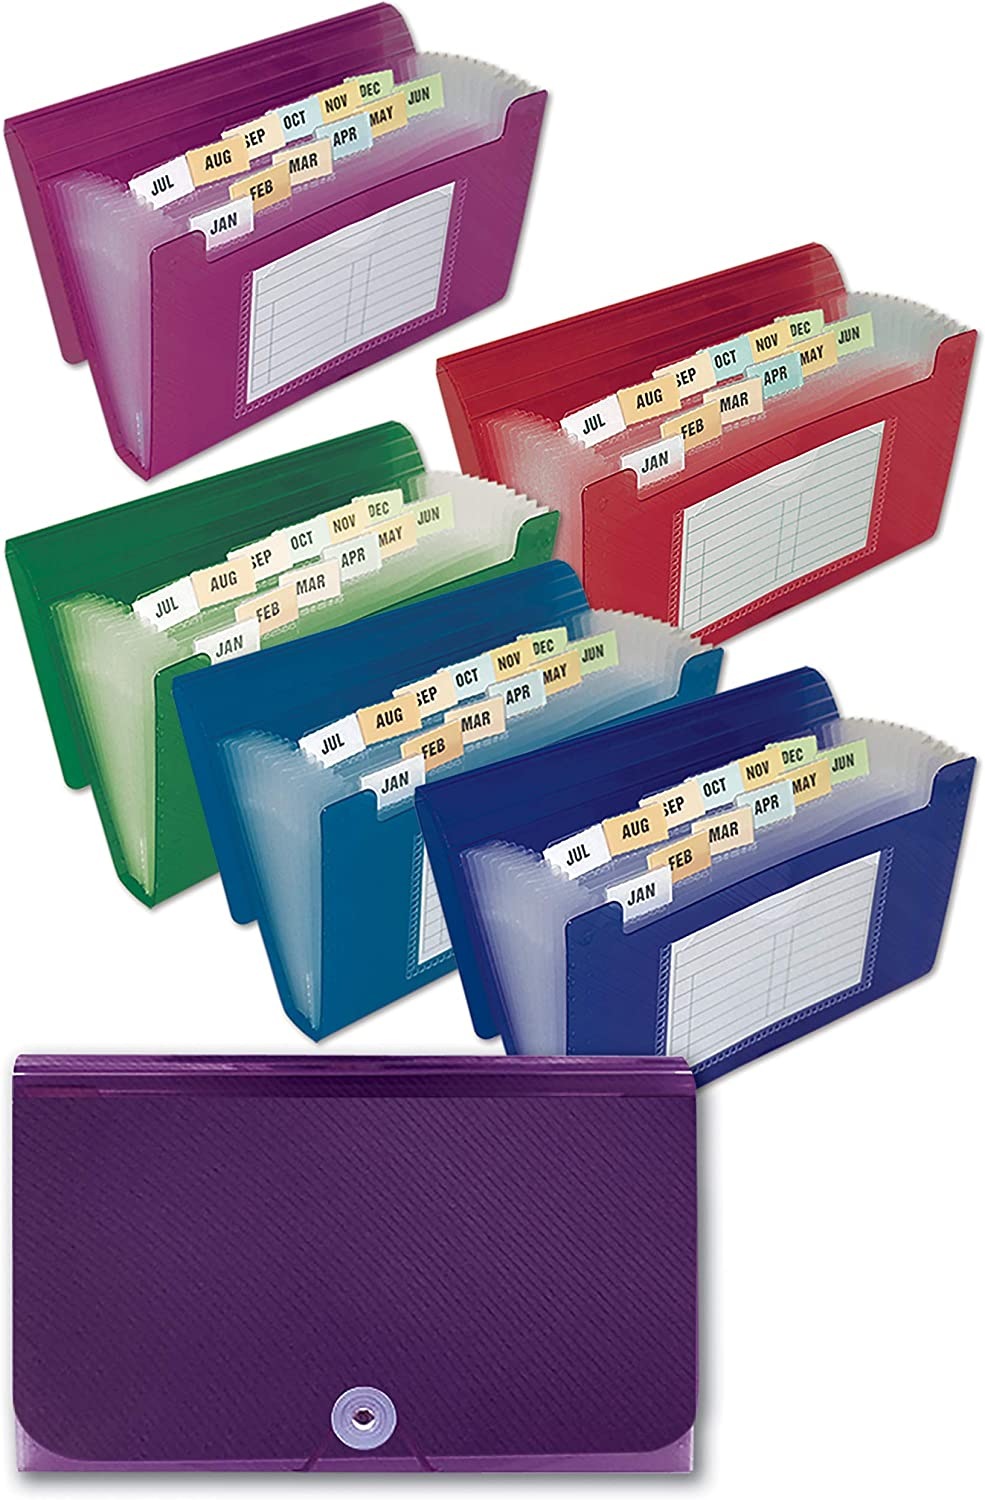 13 Pocket Coupon File Organizer, 12 Pack, Expanding File, Strong Durable Poly Material, 7 x 4.5 Inches, Set of 12, Assorted Colors